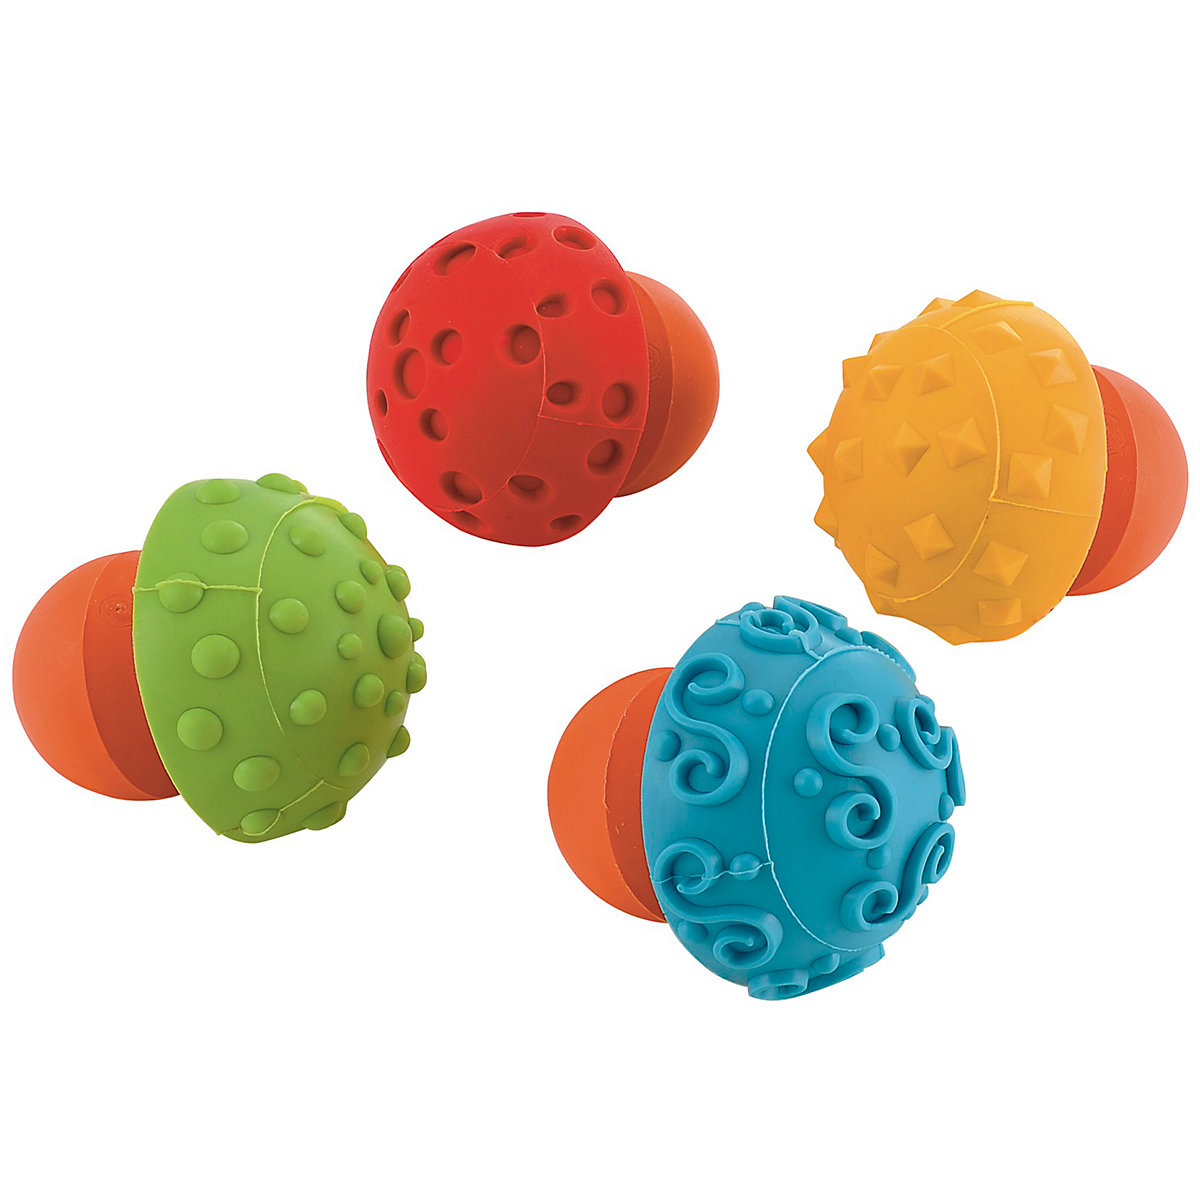 Mini Artist Silicone Stampers- 4 Pack - Artist Gifts